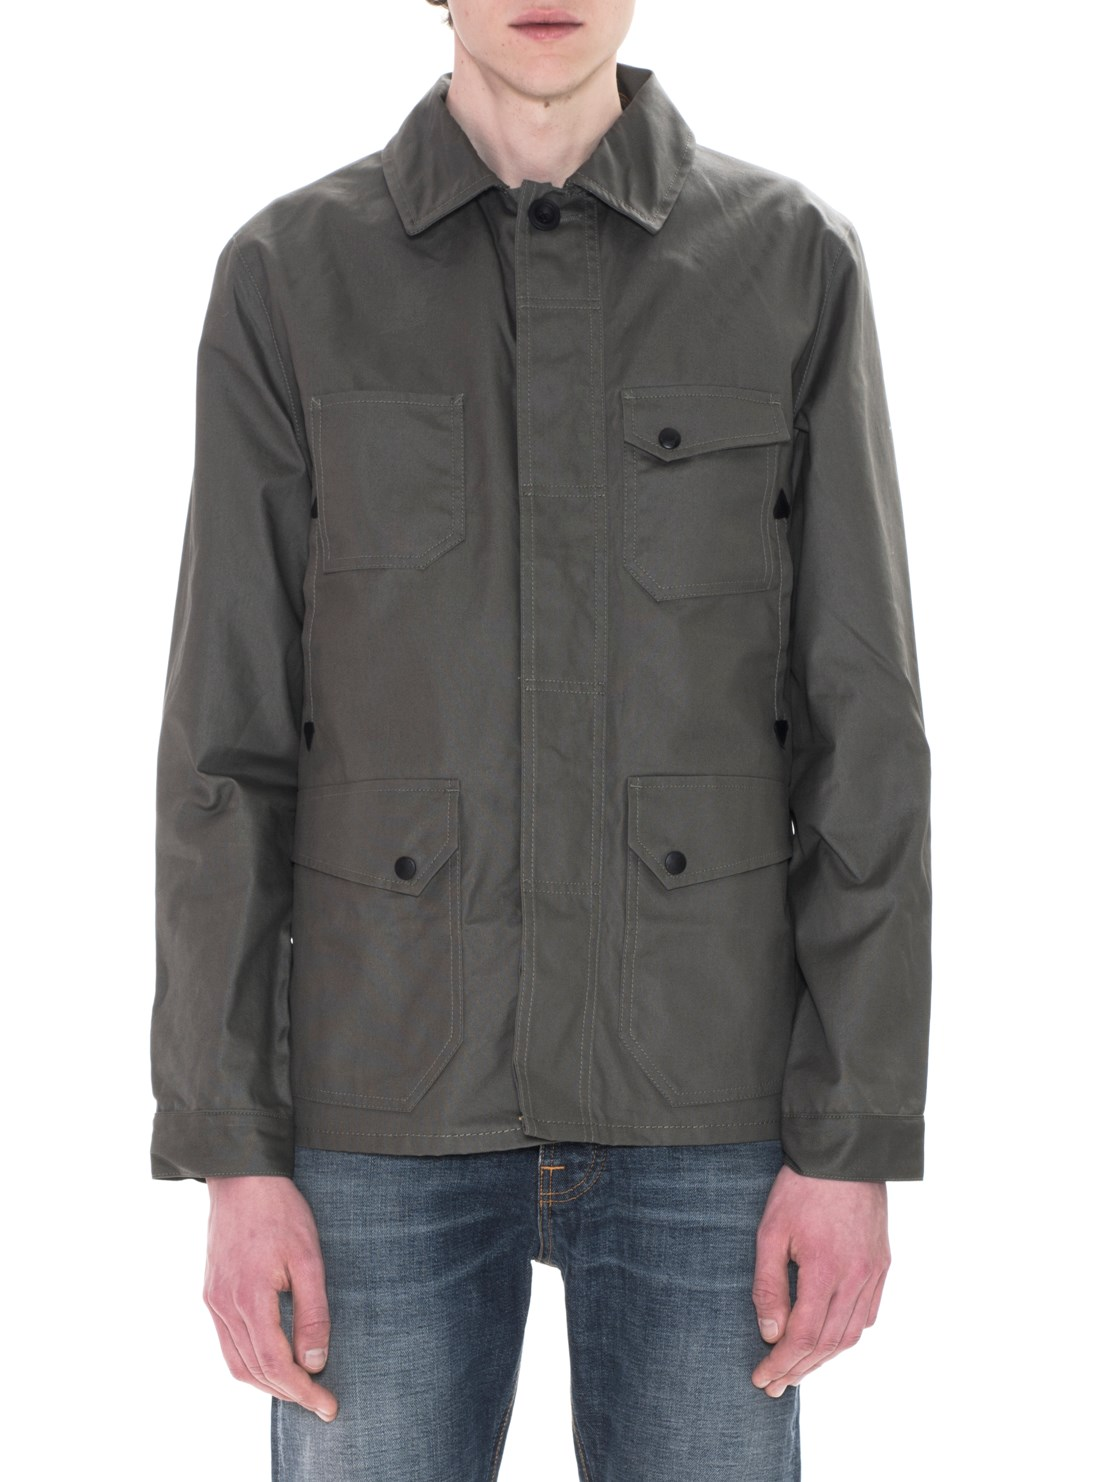 Nudie Jeans - Ethan Waxed Jacket Olive